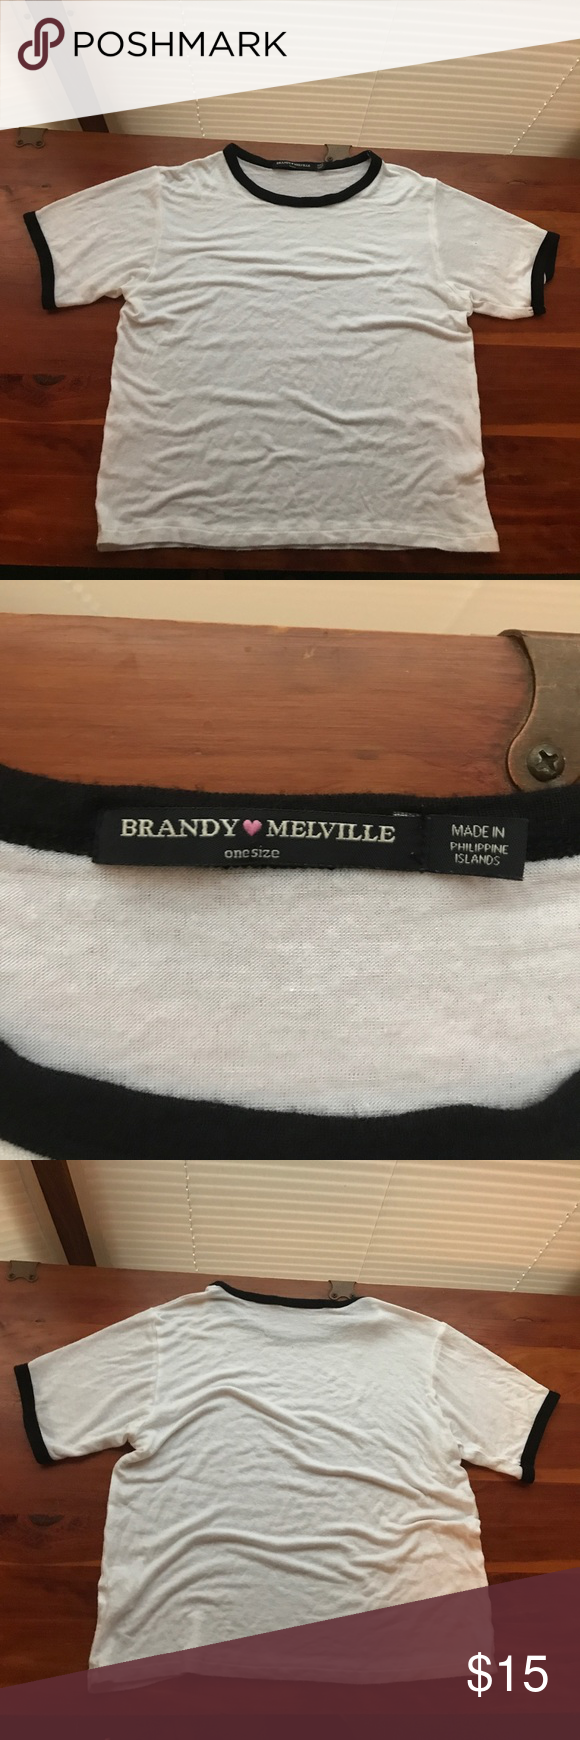 Brandy Melville Ringer Tee White and black Brandy Melville Ringer Tee. Worn a few times and in great condition! Black lining around collar and ends of sleeves. offers welcome! Brandy Melville Tops